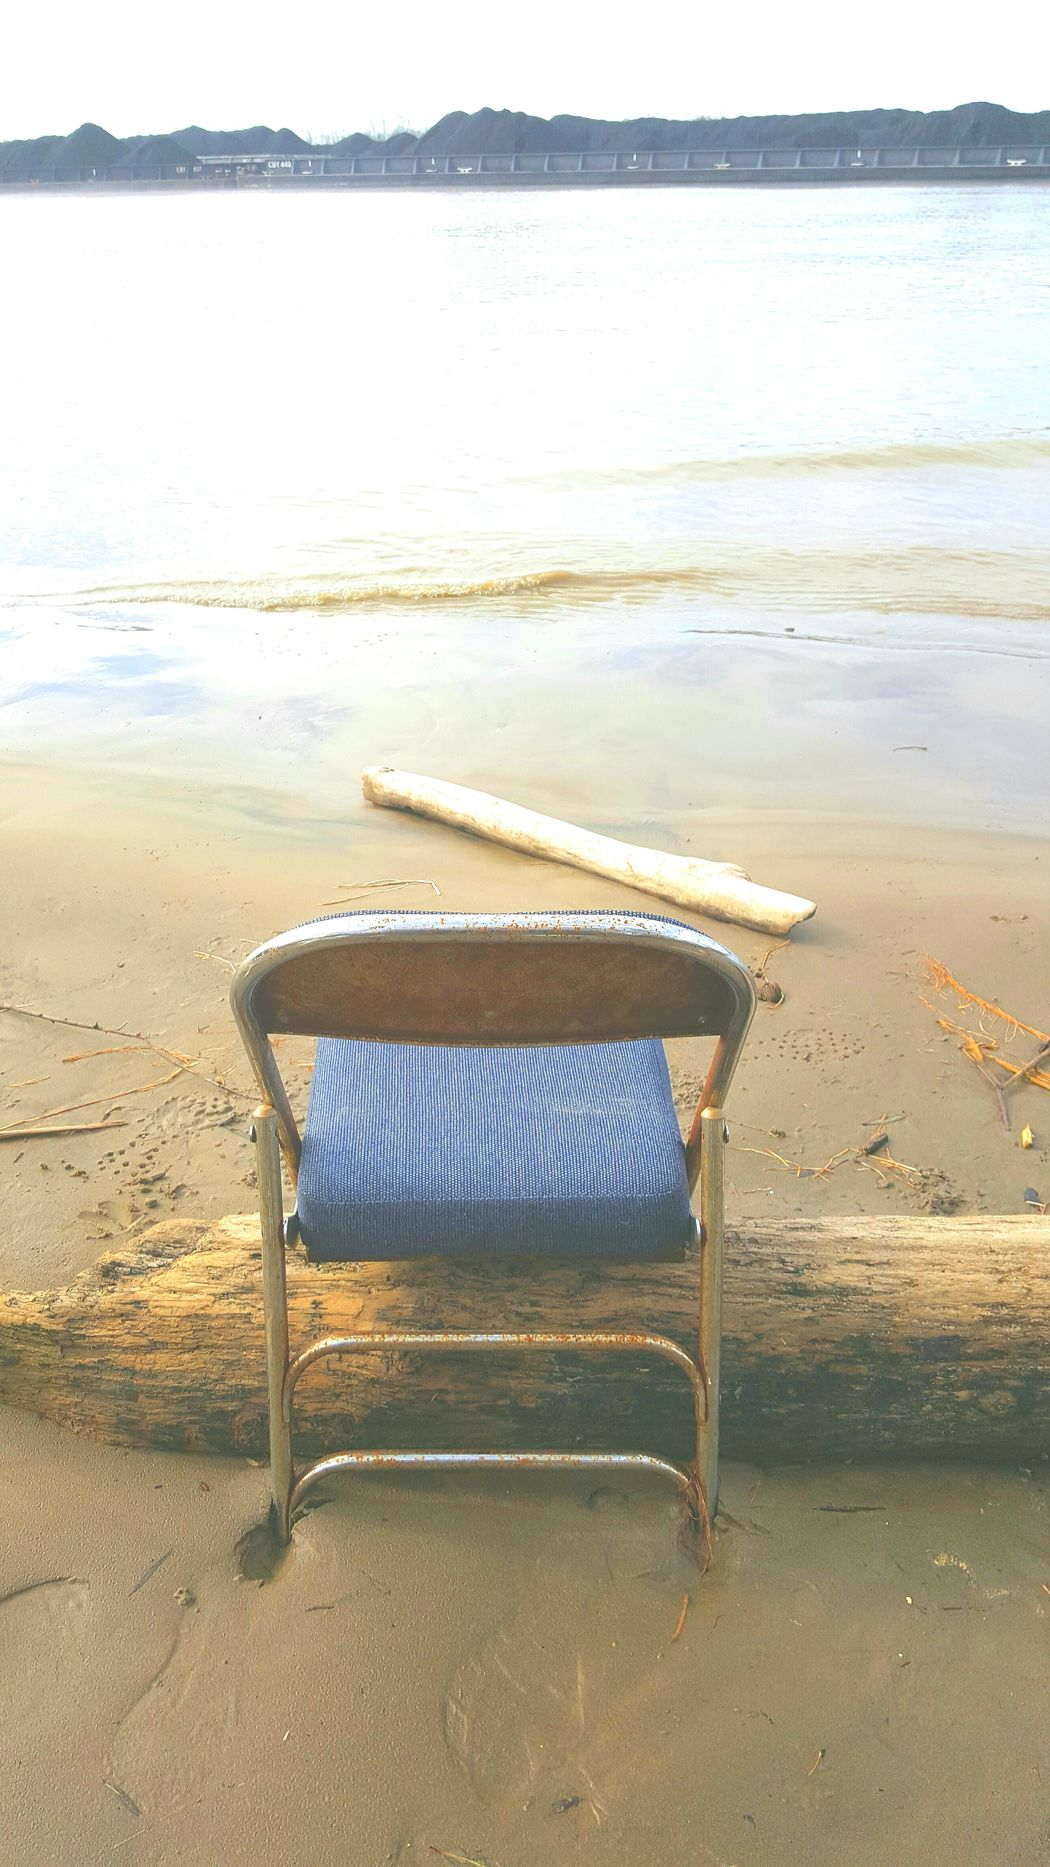 Back Of A Chair Beach Chair Chair On Beac Chair On Shor Day Lonely Chair Metal Chair Nature No People Outdoors Sand Sole Cha